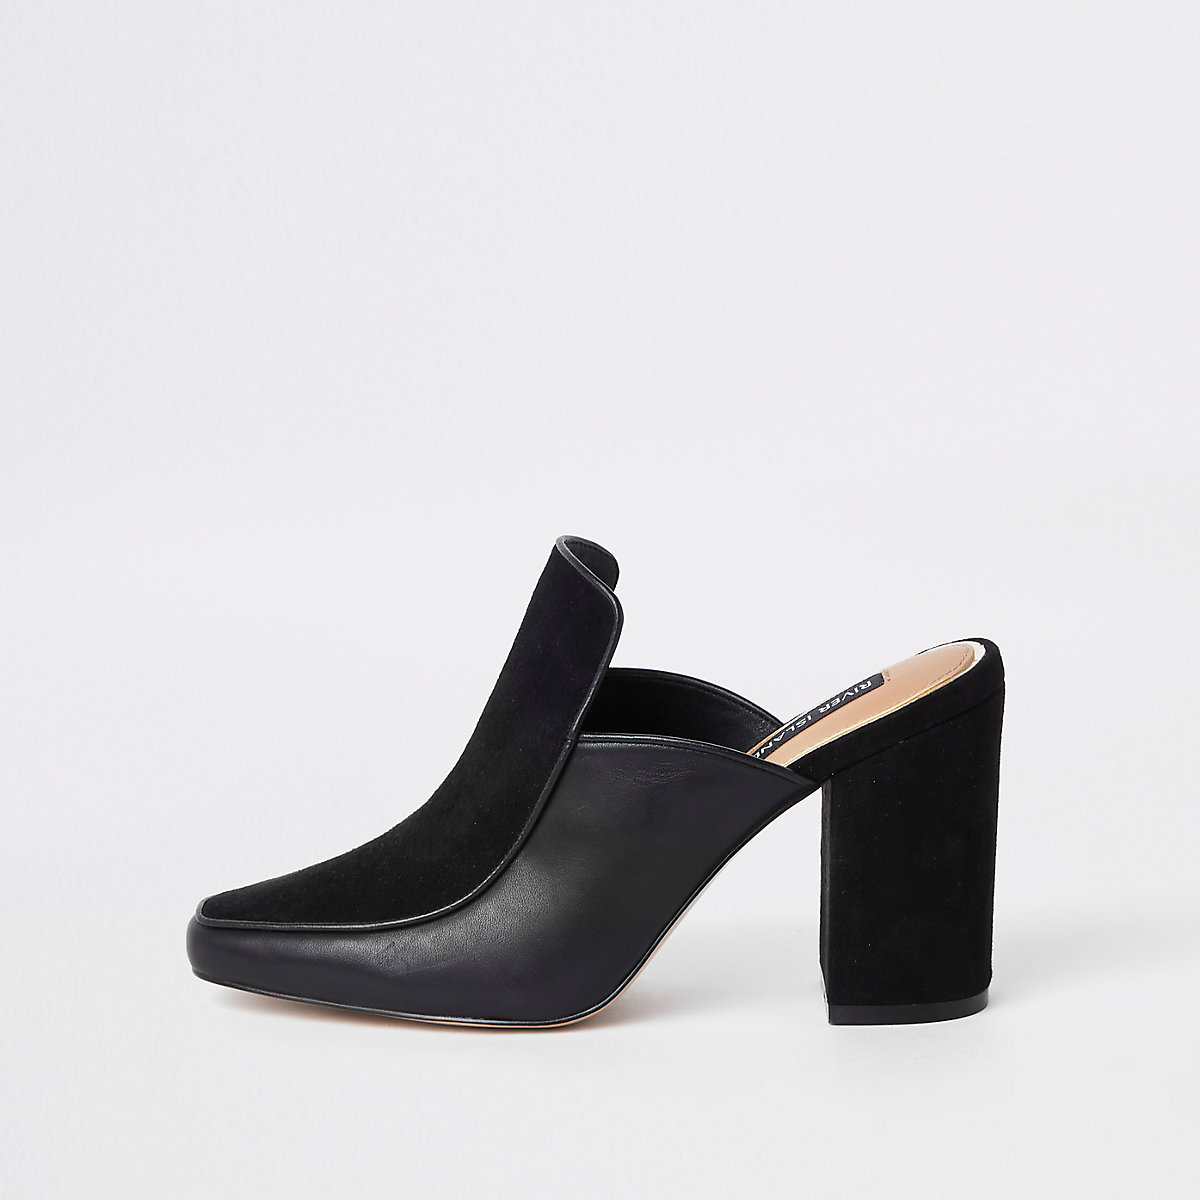 Black leather square toe mule